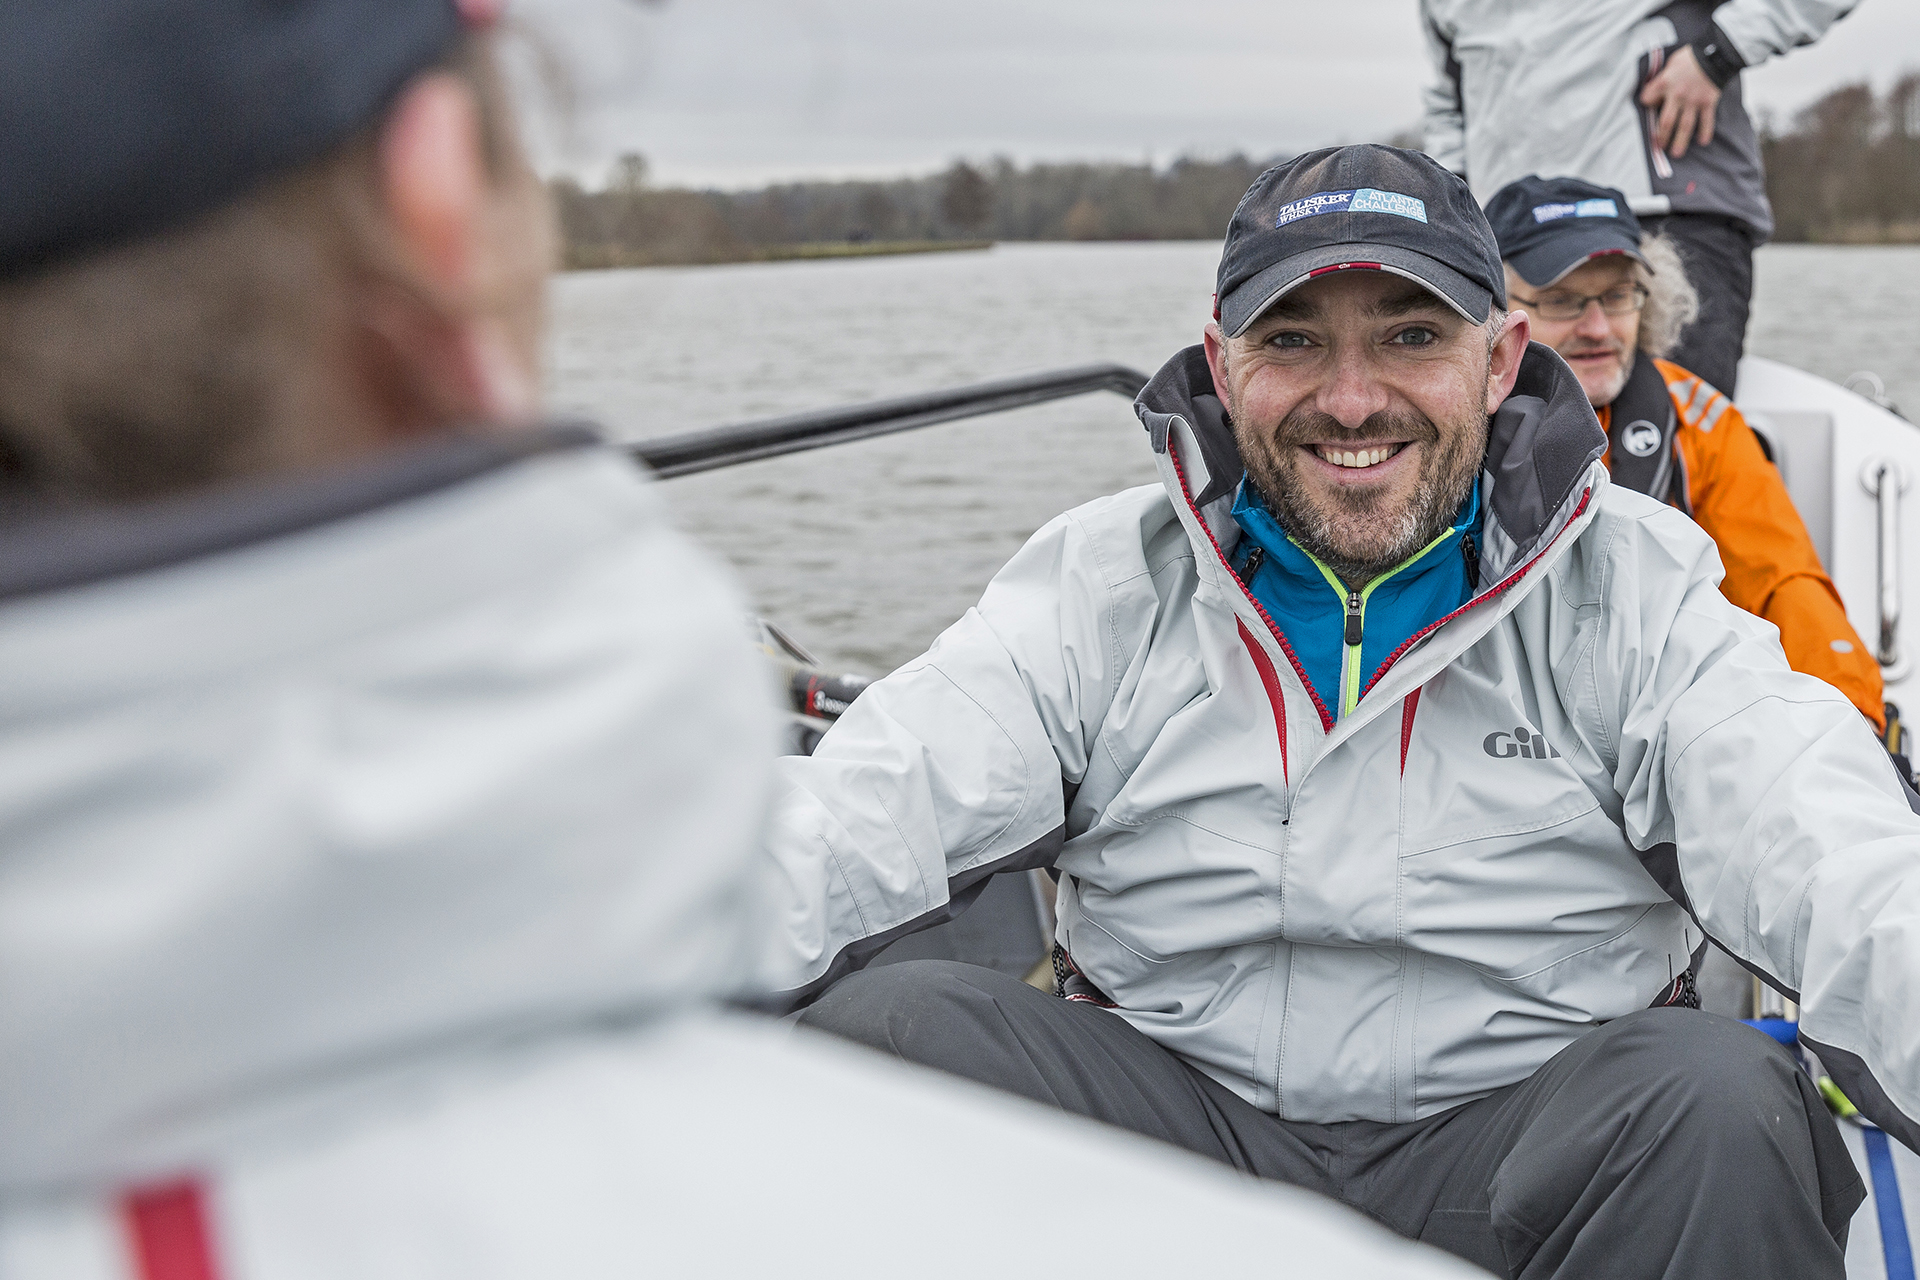 Heads Together and Row team on the River Thames: Toby